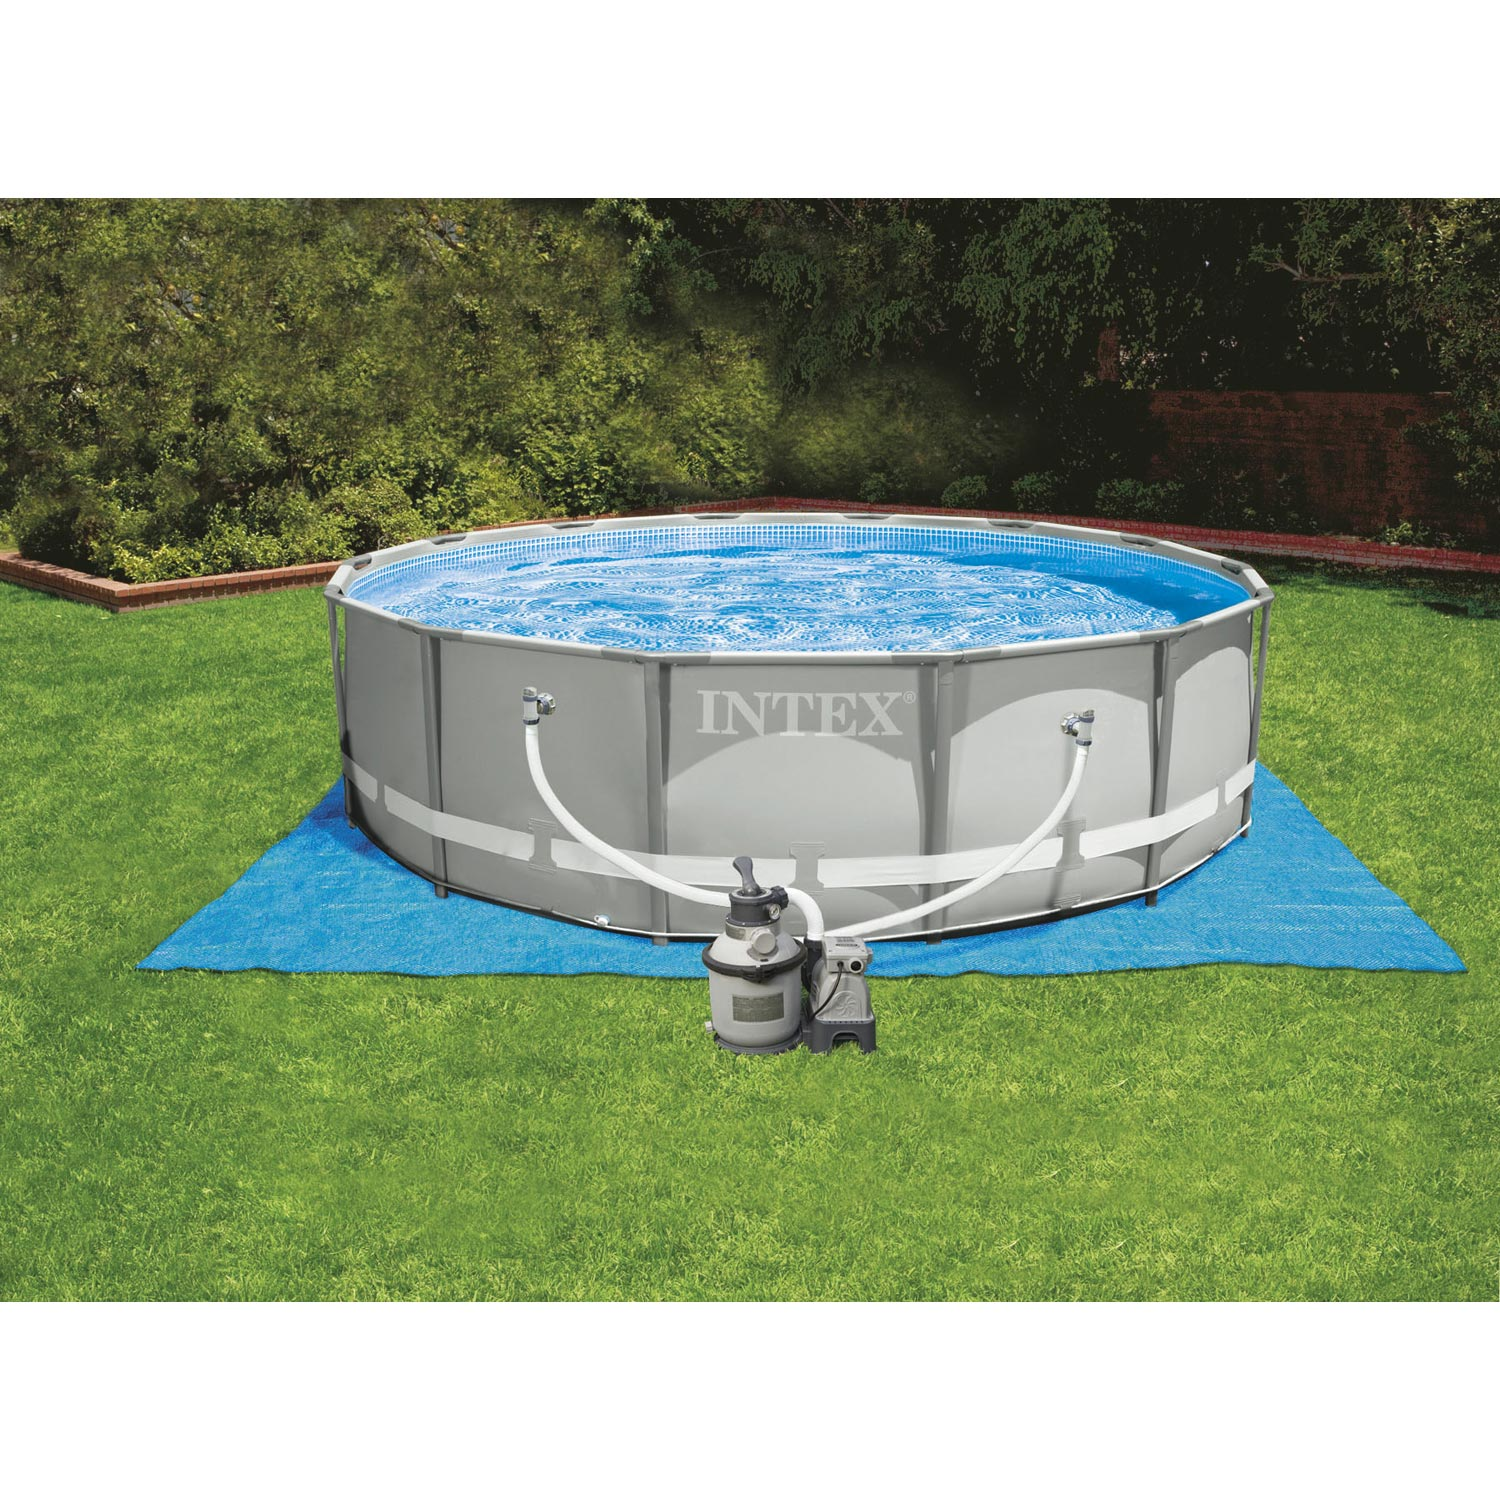 Piscine hors sol autoportante tubulaire ultraframe intex for Piscine hors sol intex ronde